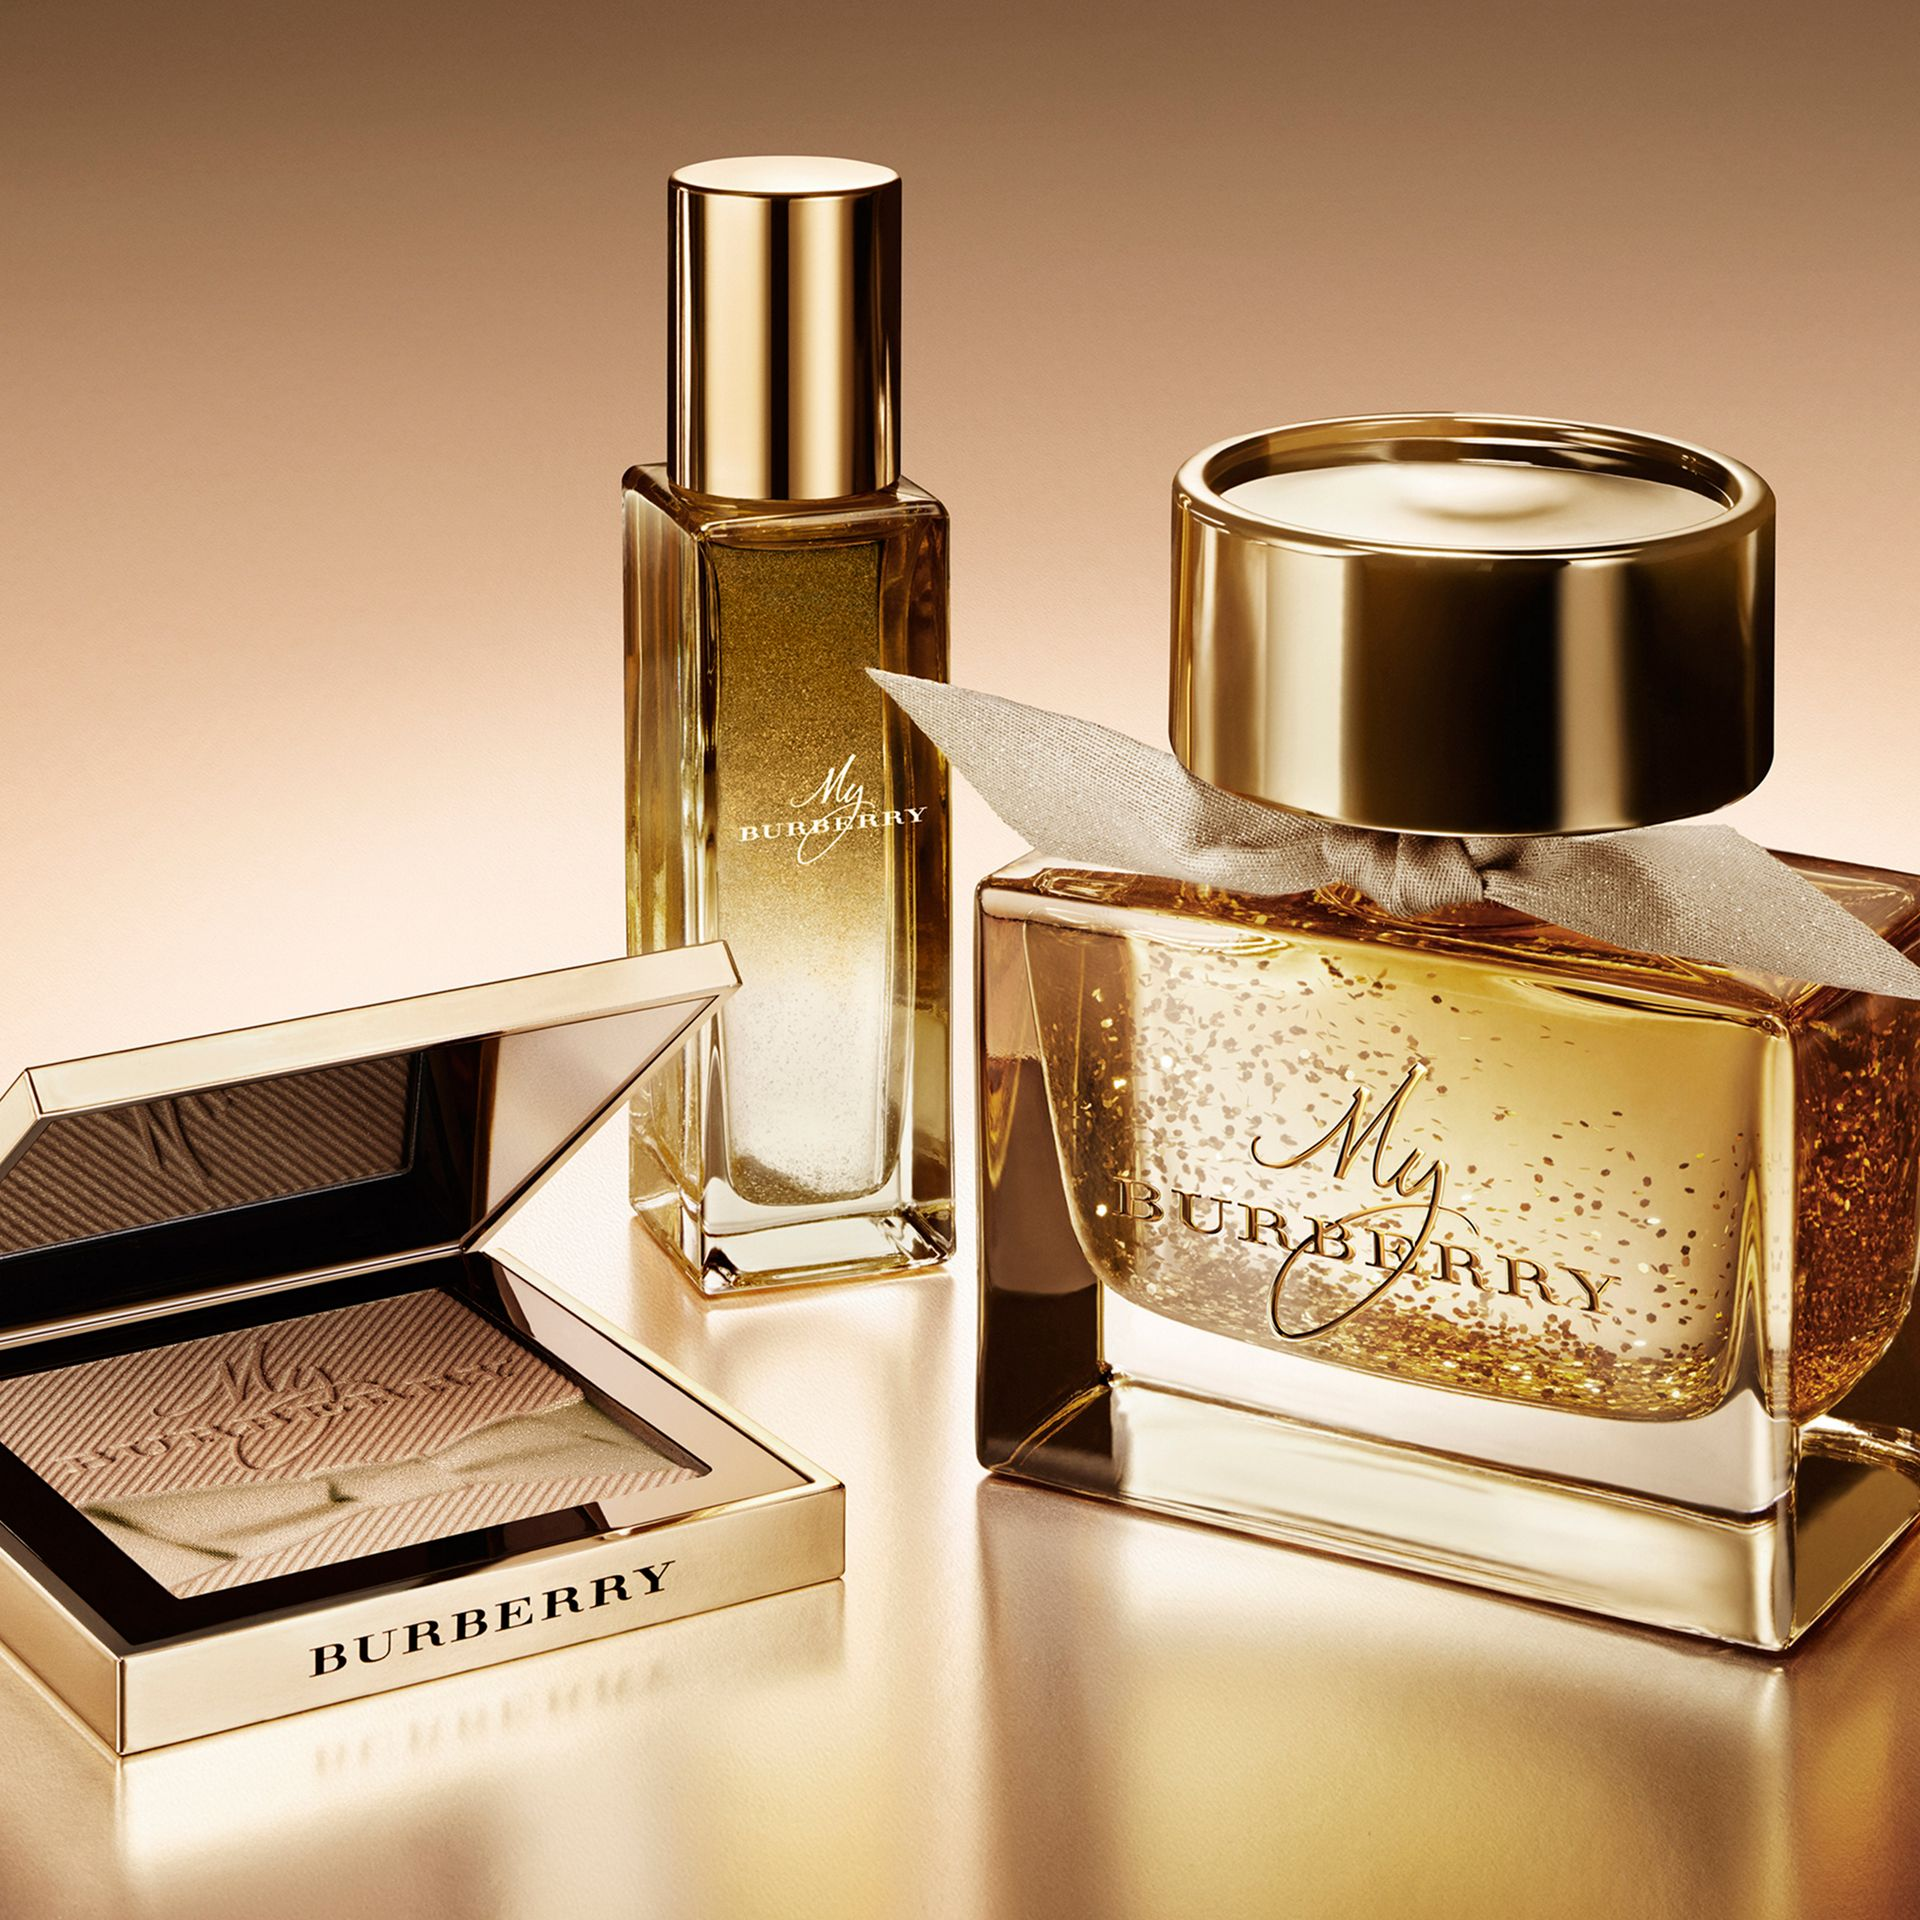 My Burberry Limited Edition Eau de Parfum 50ml - gallery image 2